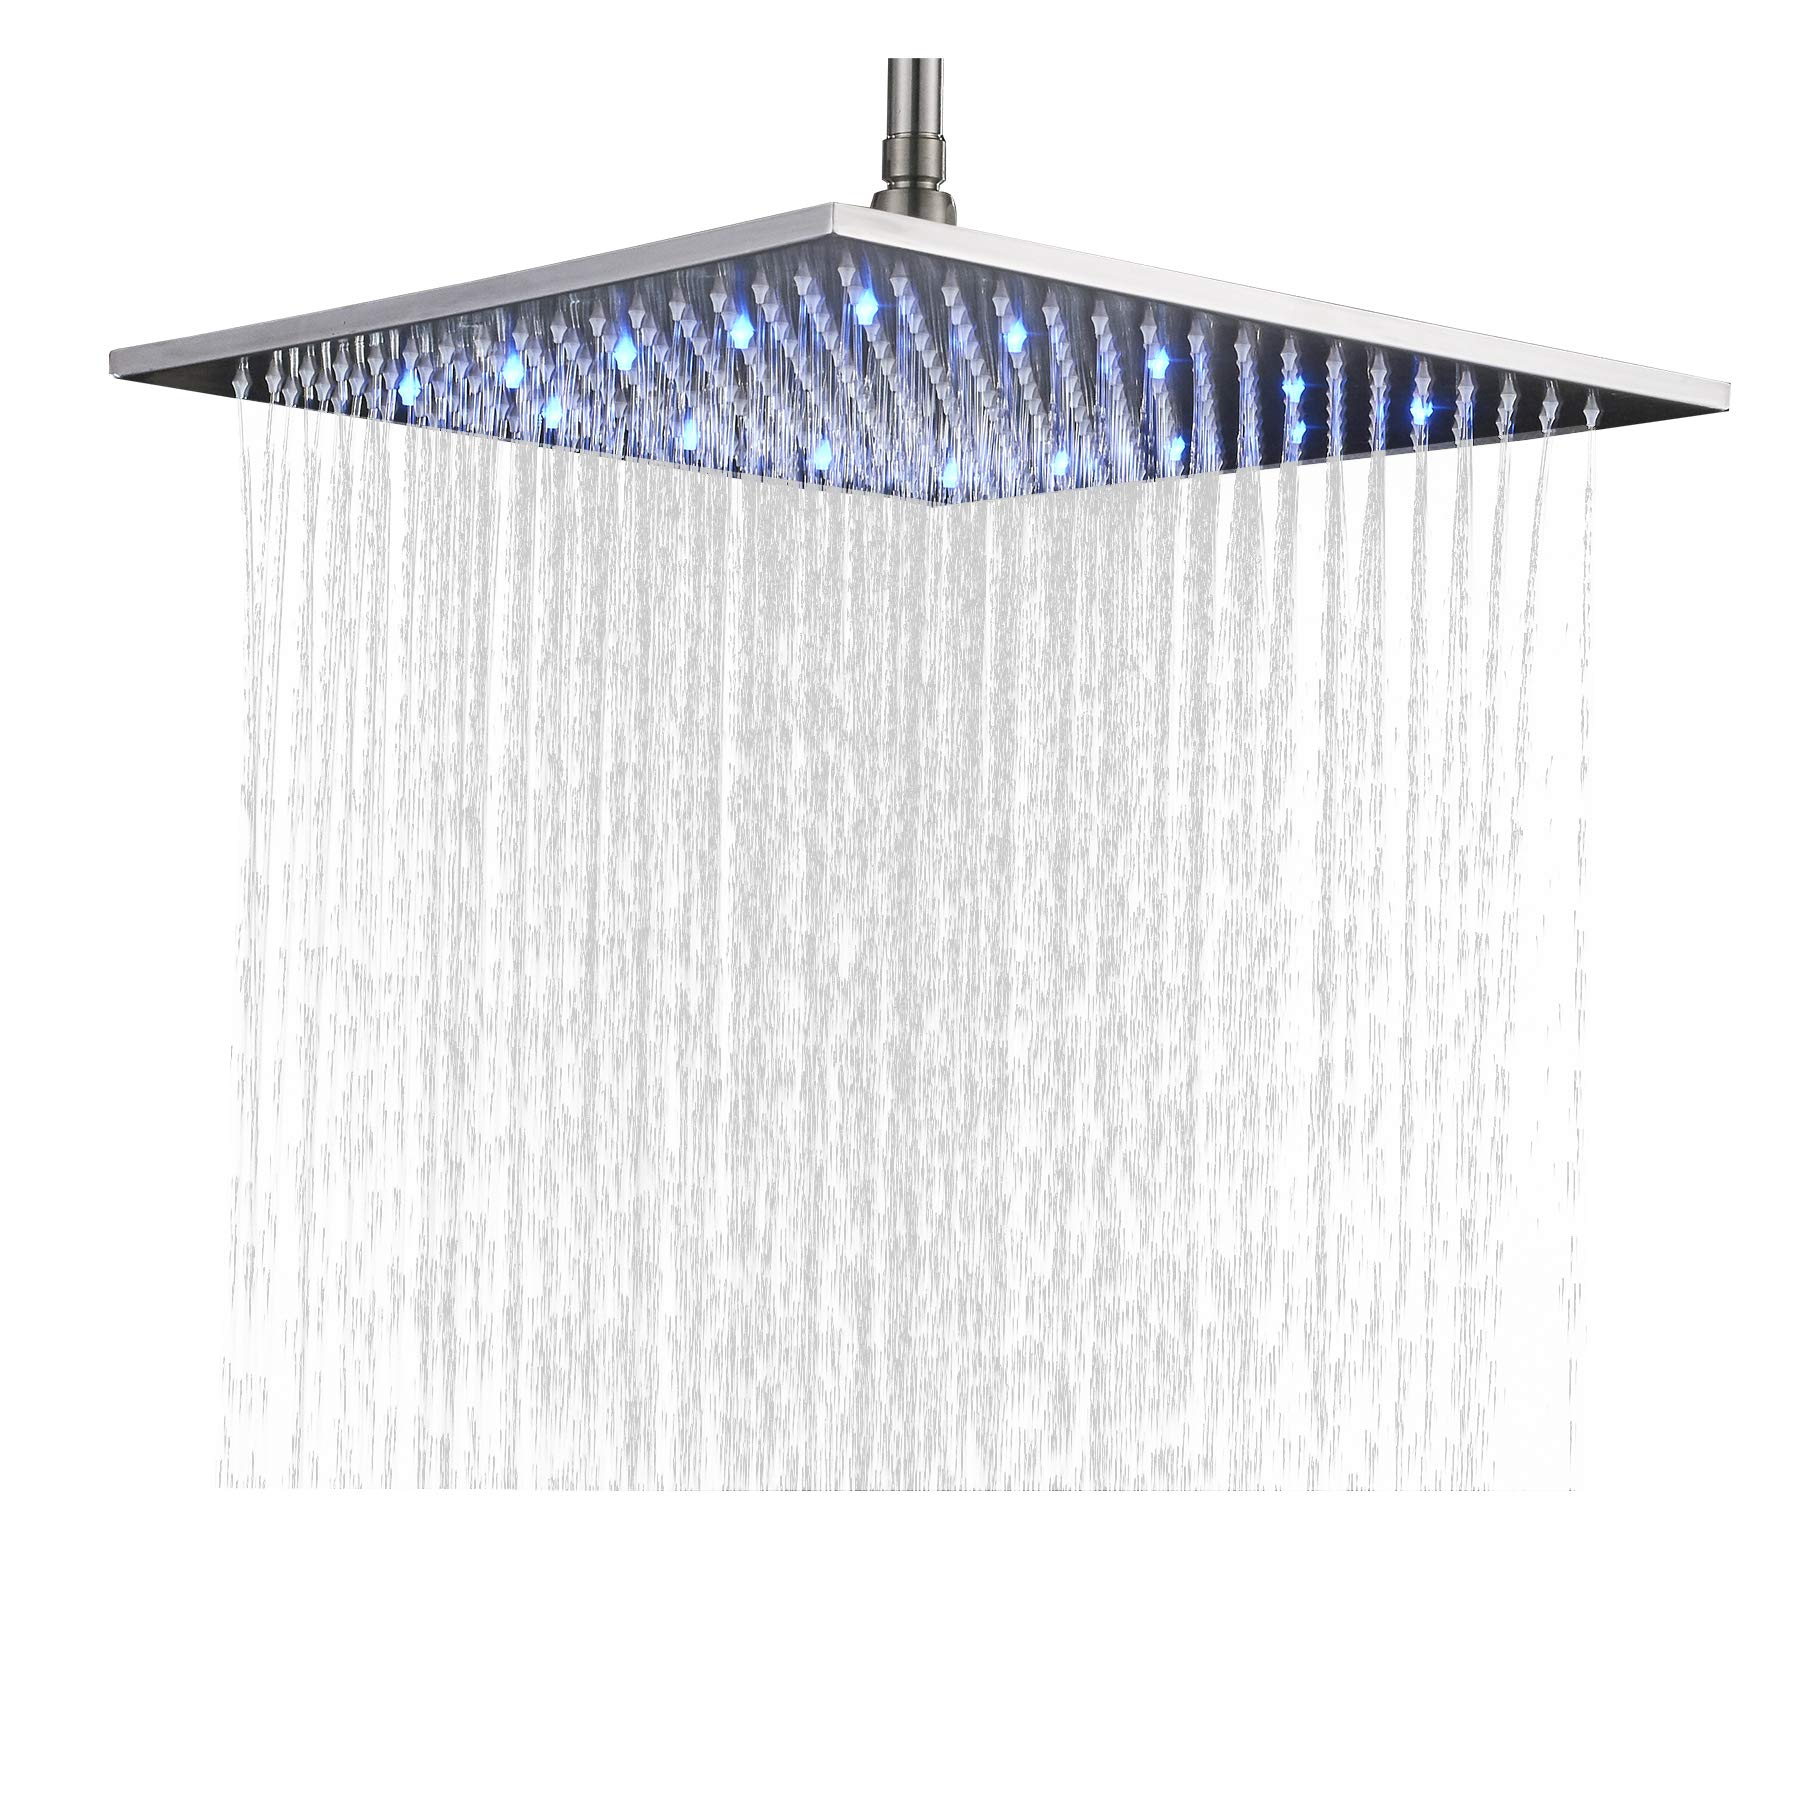 Rozin Bathroom Replacement LED Changing Color 16-inch Square Rainfall Shower Head Overhead Sprayer Brushed Nickel